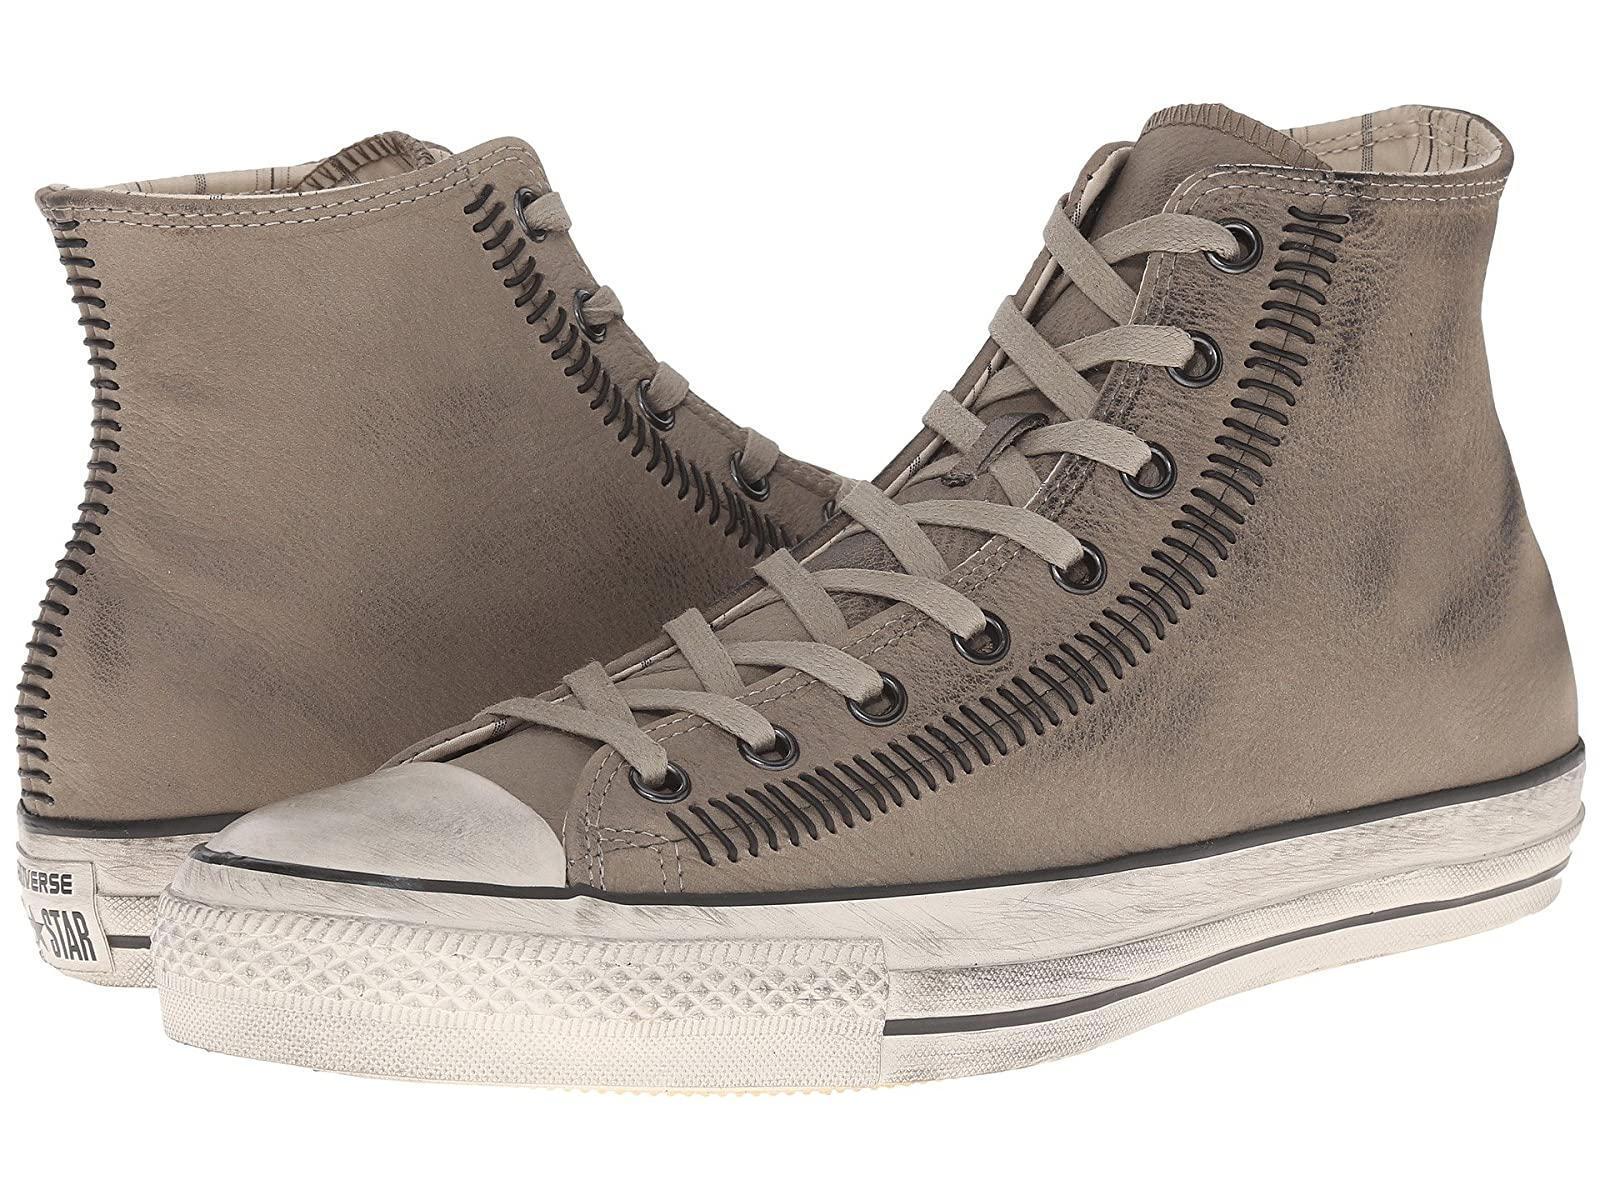 Converse by John Varvatos Chuck Taylor All Star Artisan Stitch HiCheap and distinctive eye-catching shoes